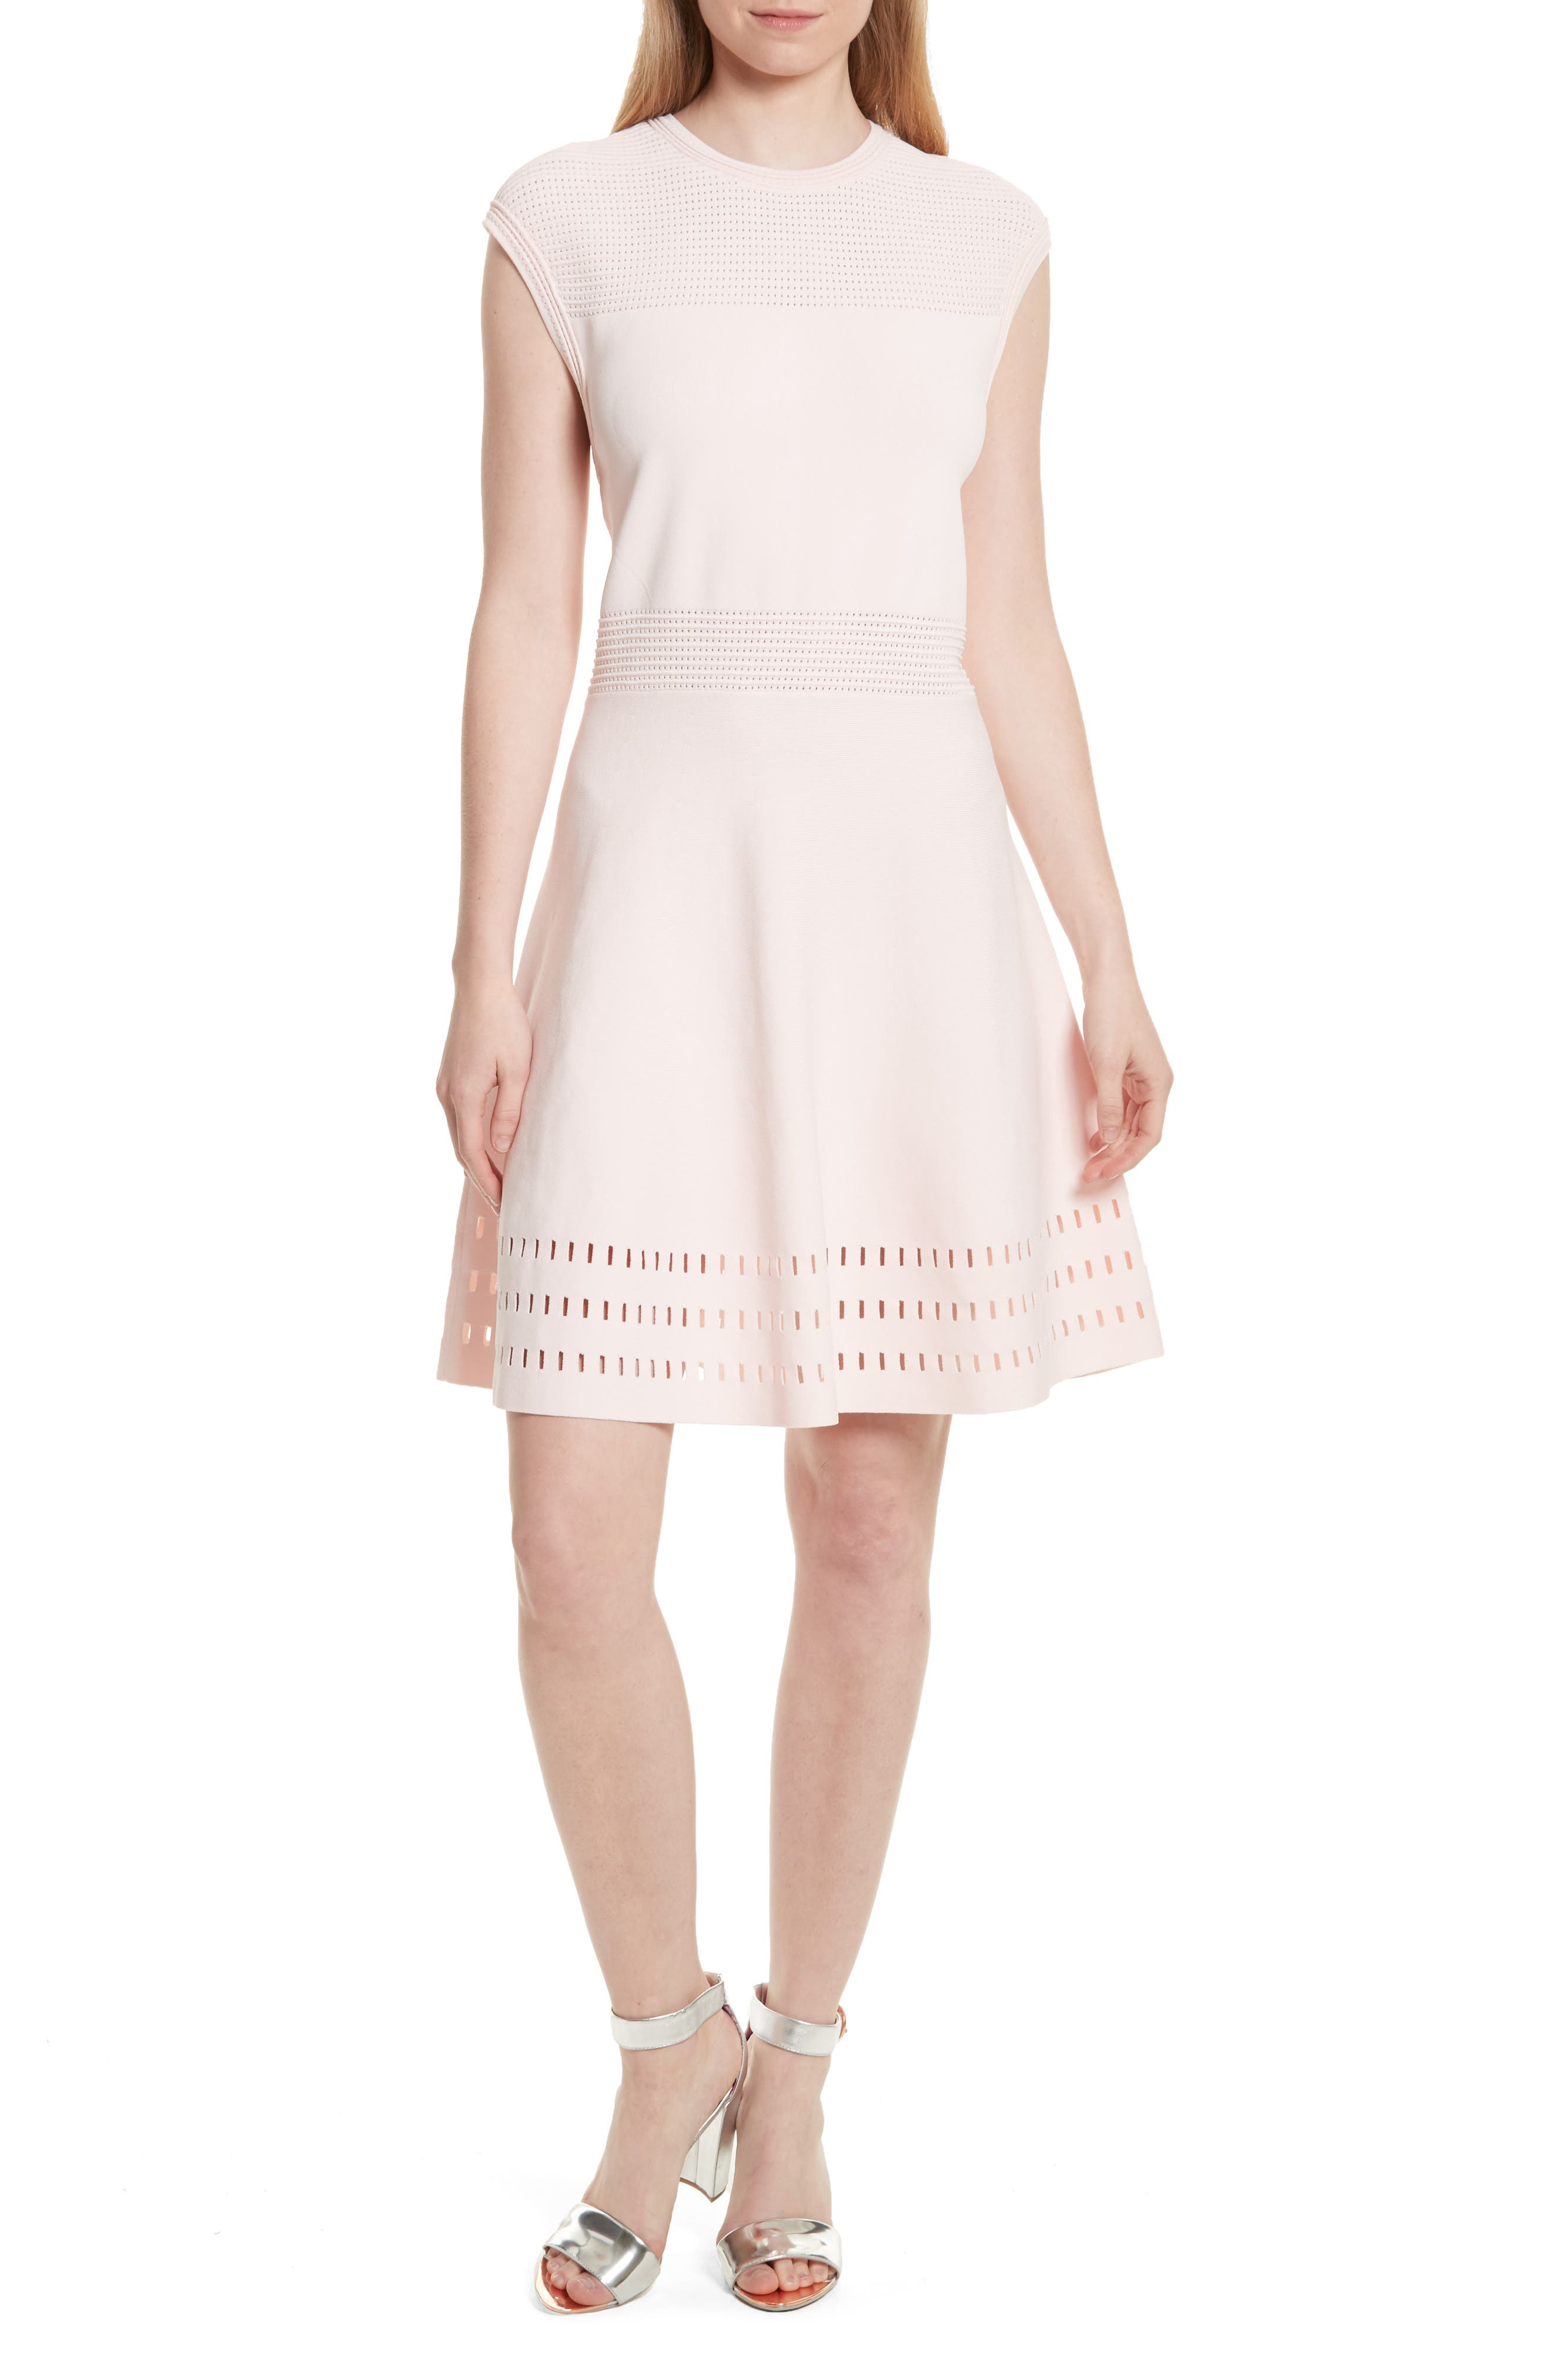 Aurbray Knit Skater Dress,                         Main,                         color, Nude Pink